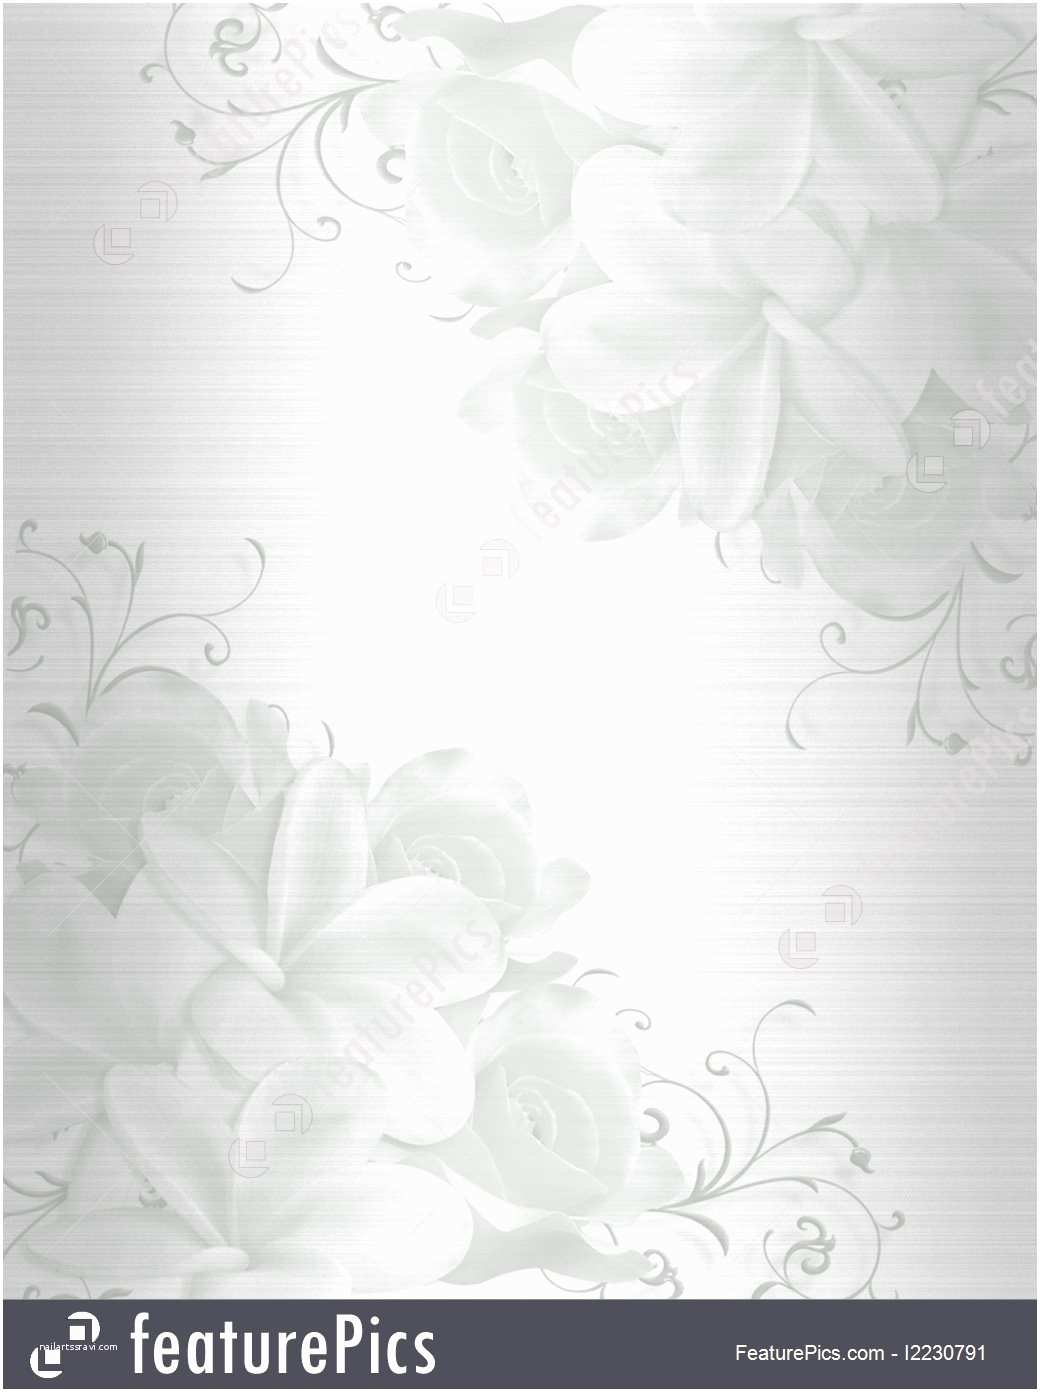 Background Images for Wedding Invitation Cards Wedding Invitation Card Background Chatterzoom